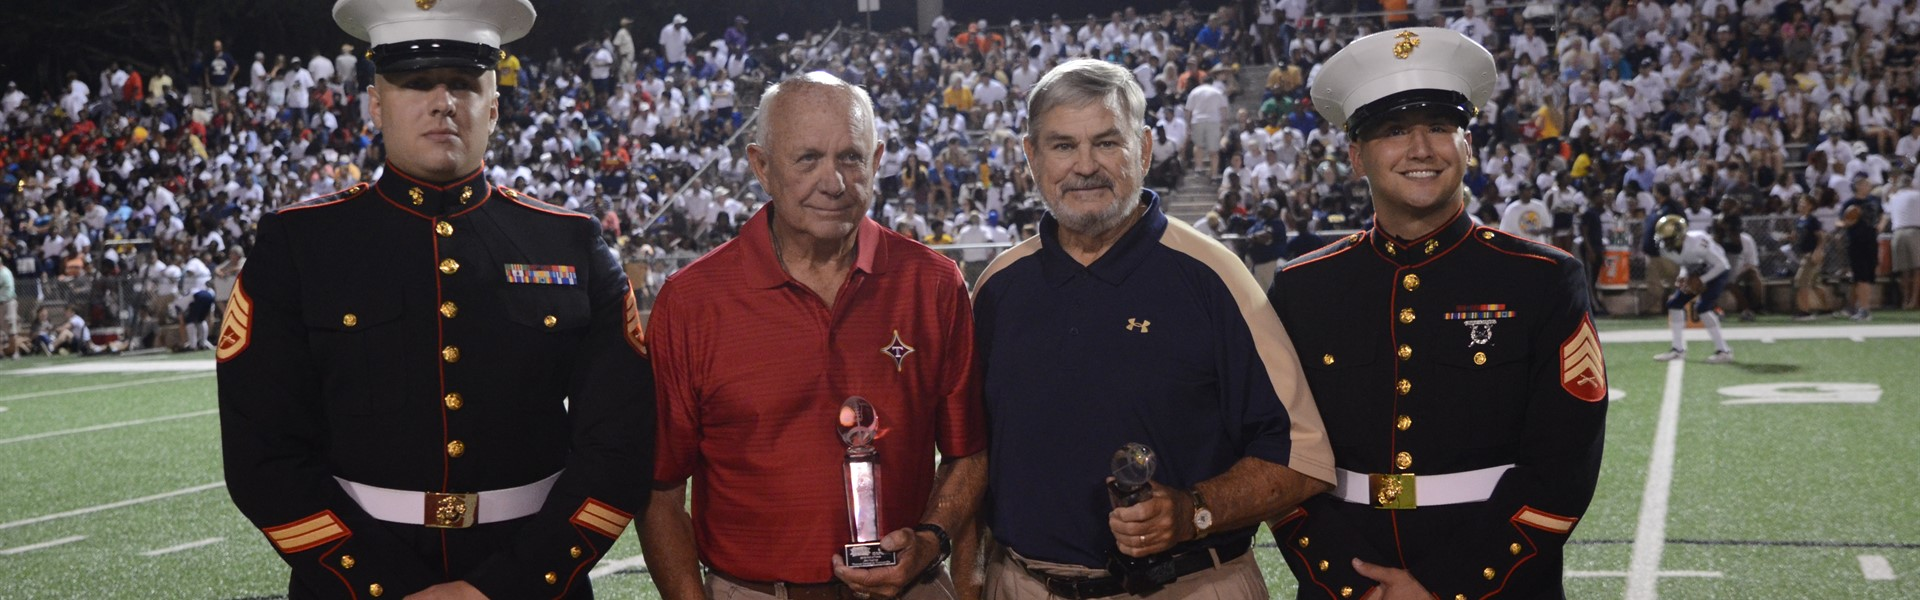 Coach Ed Pilcher was inducted into the Great American Rivalry Series Hall of Fame.